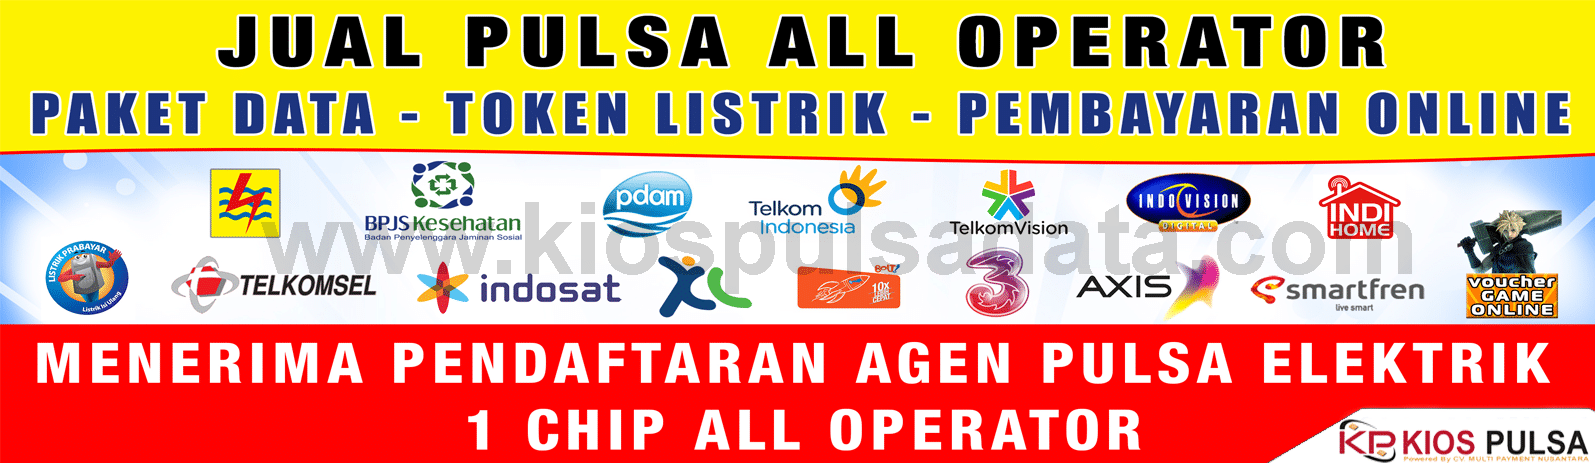 Cara inject paket internet all operator